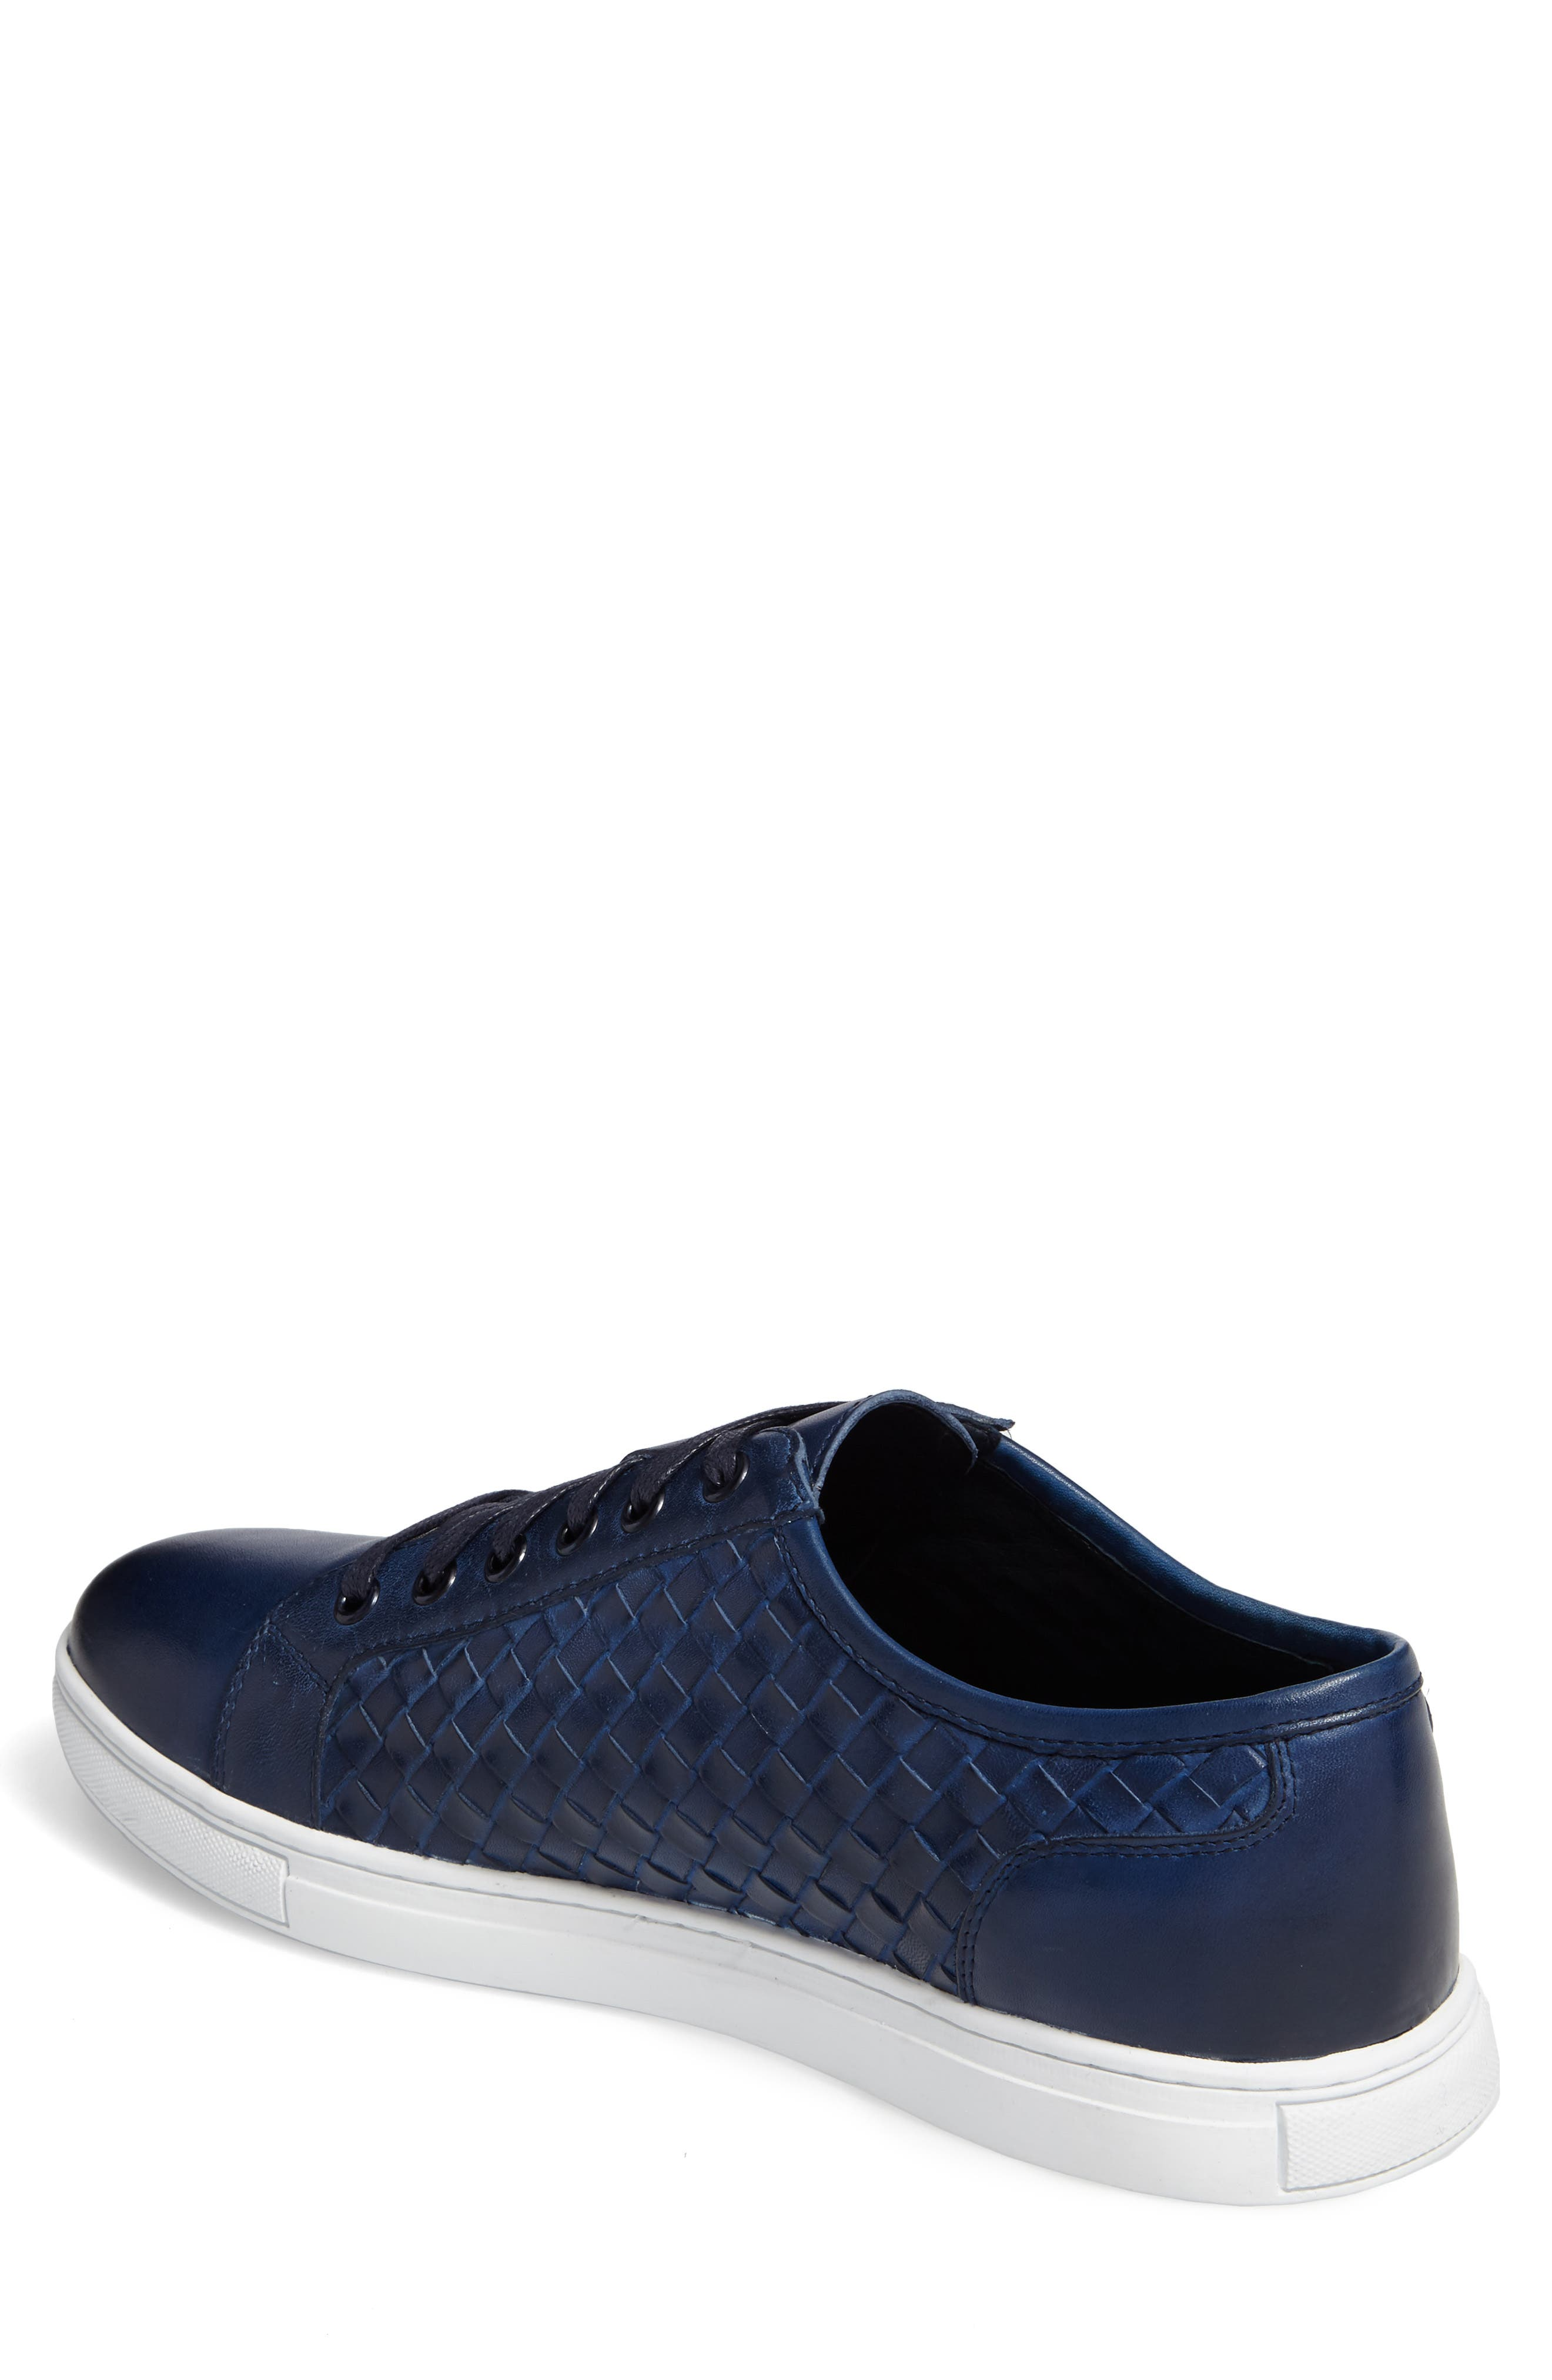 Fader Sneaker,                             Alternate thumbnail 2, color,                             Blue Leather